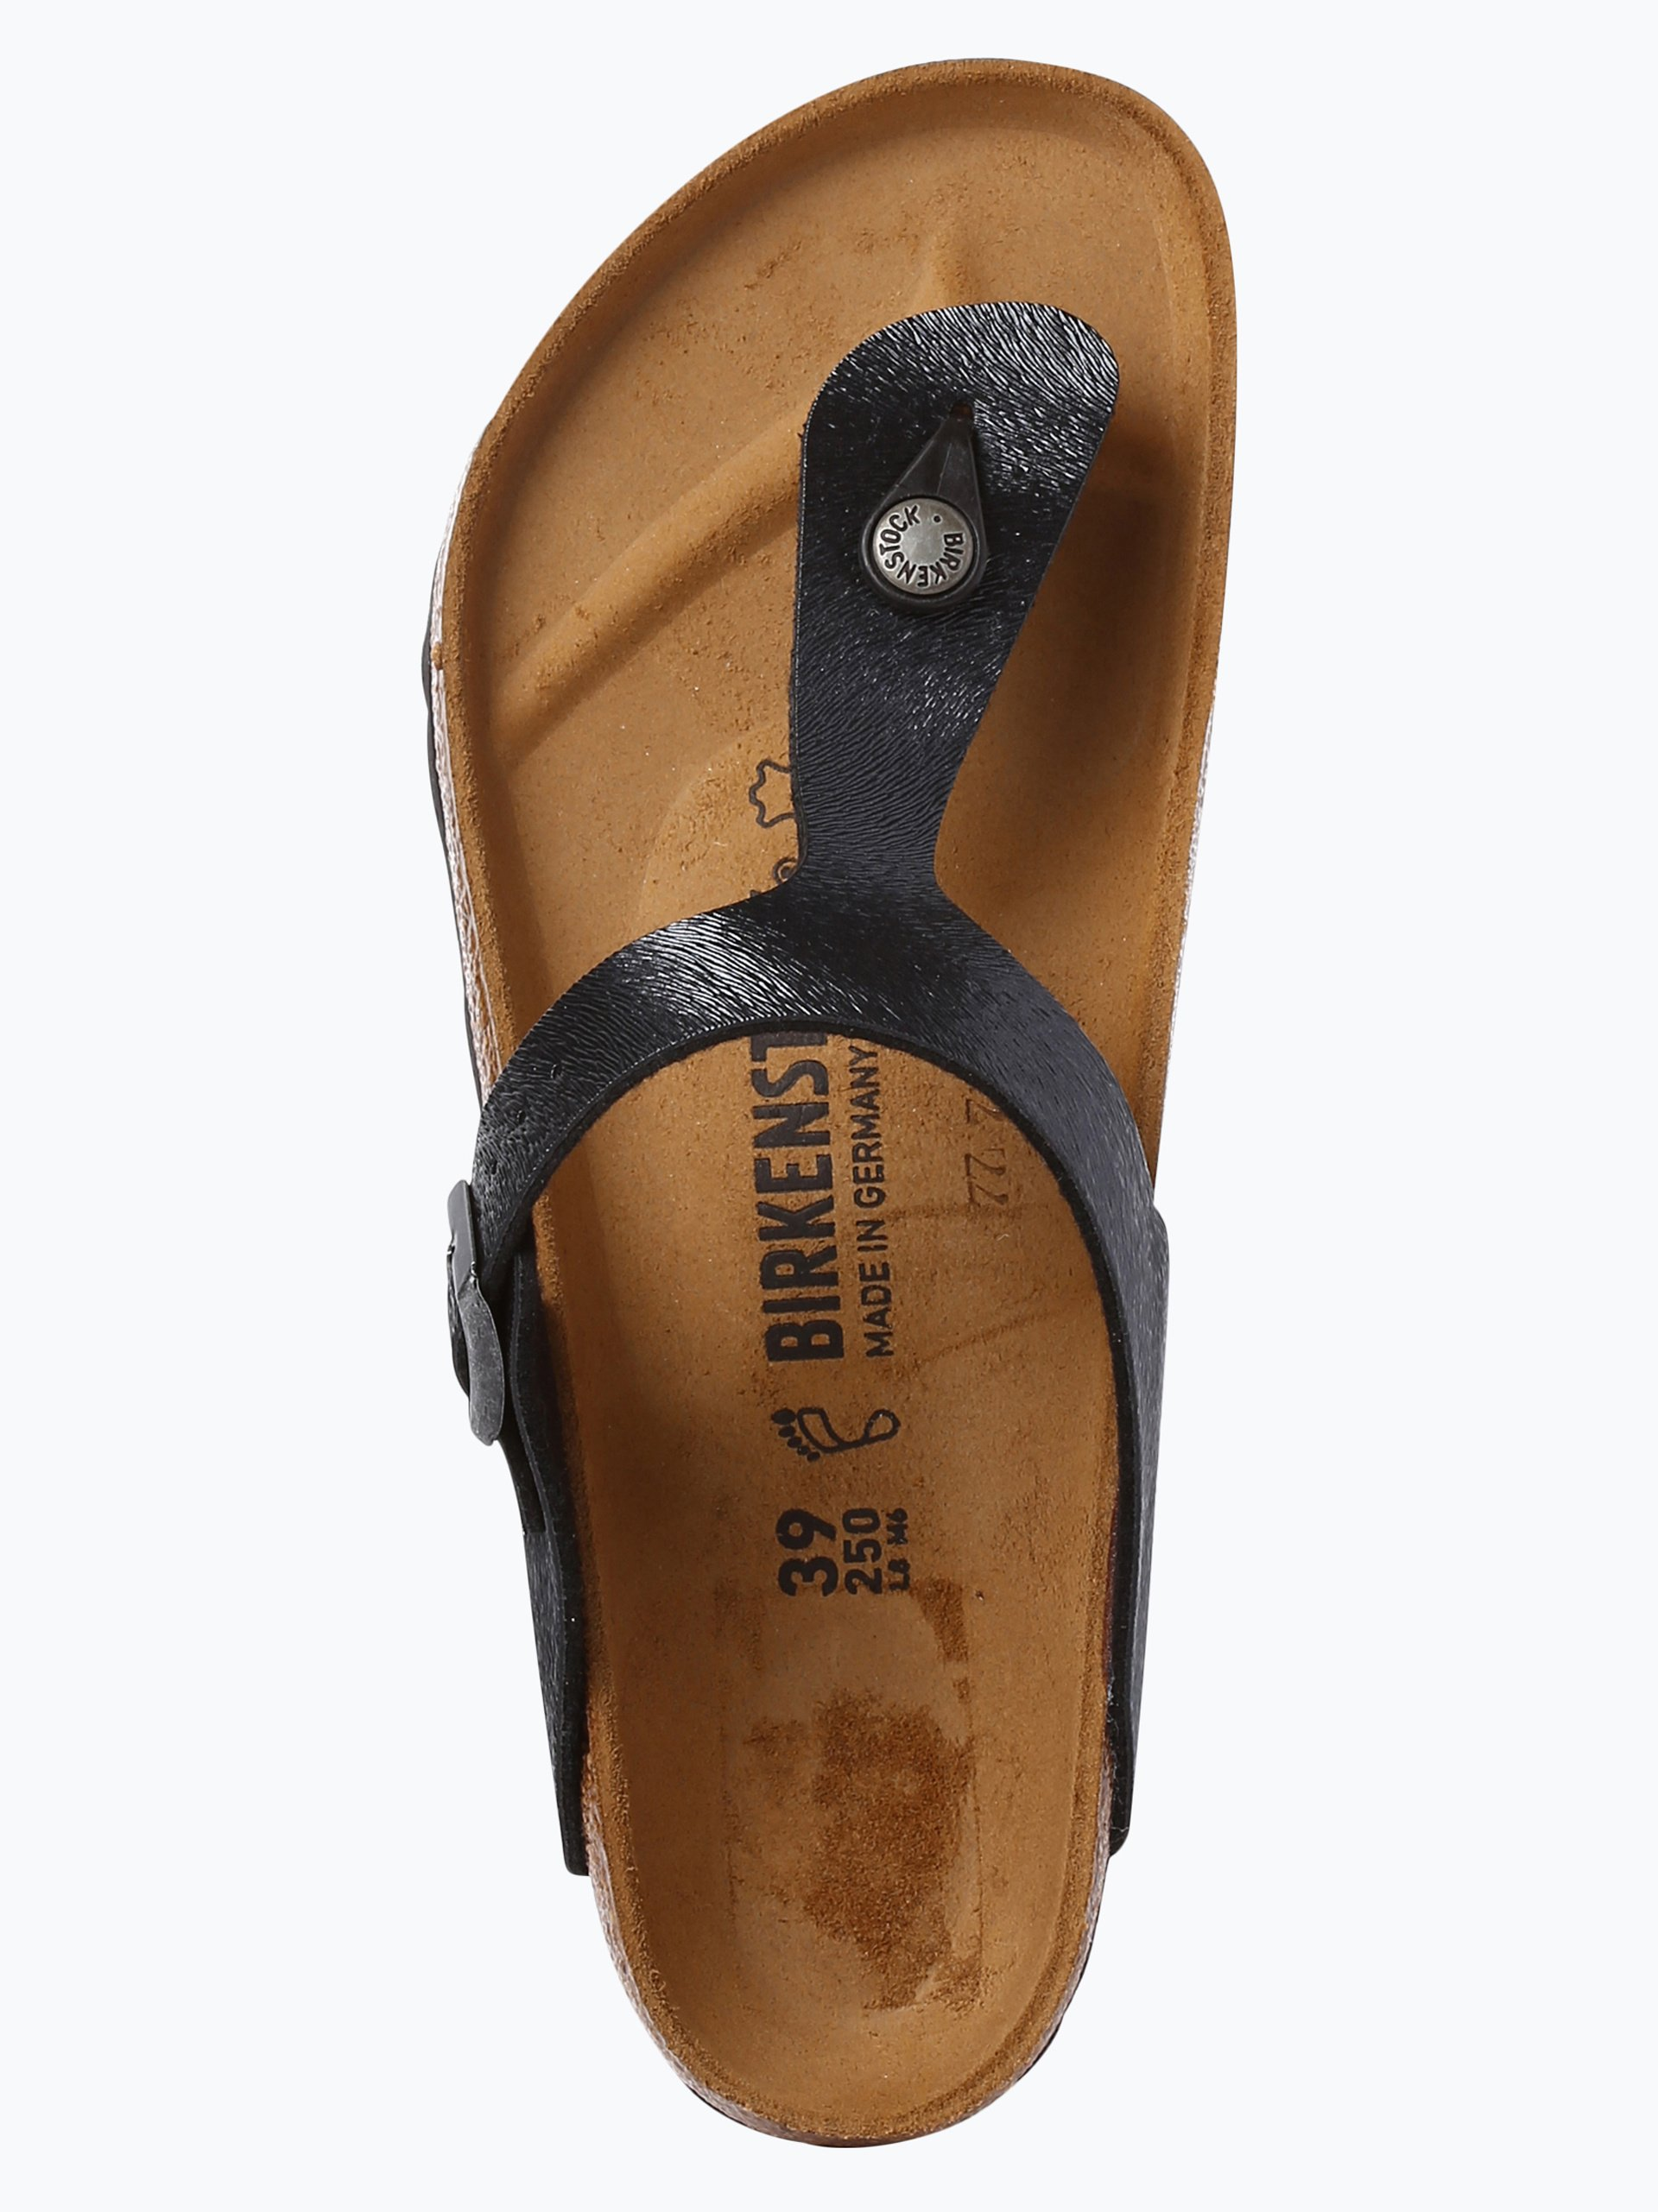 birkenstock damen sandalen mit leder anteil gizeh bs 2 online kaufen peek und cloppenburg de. Black Bedroom Furniture Sets. Home Design Ideas